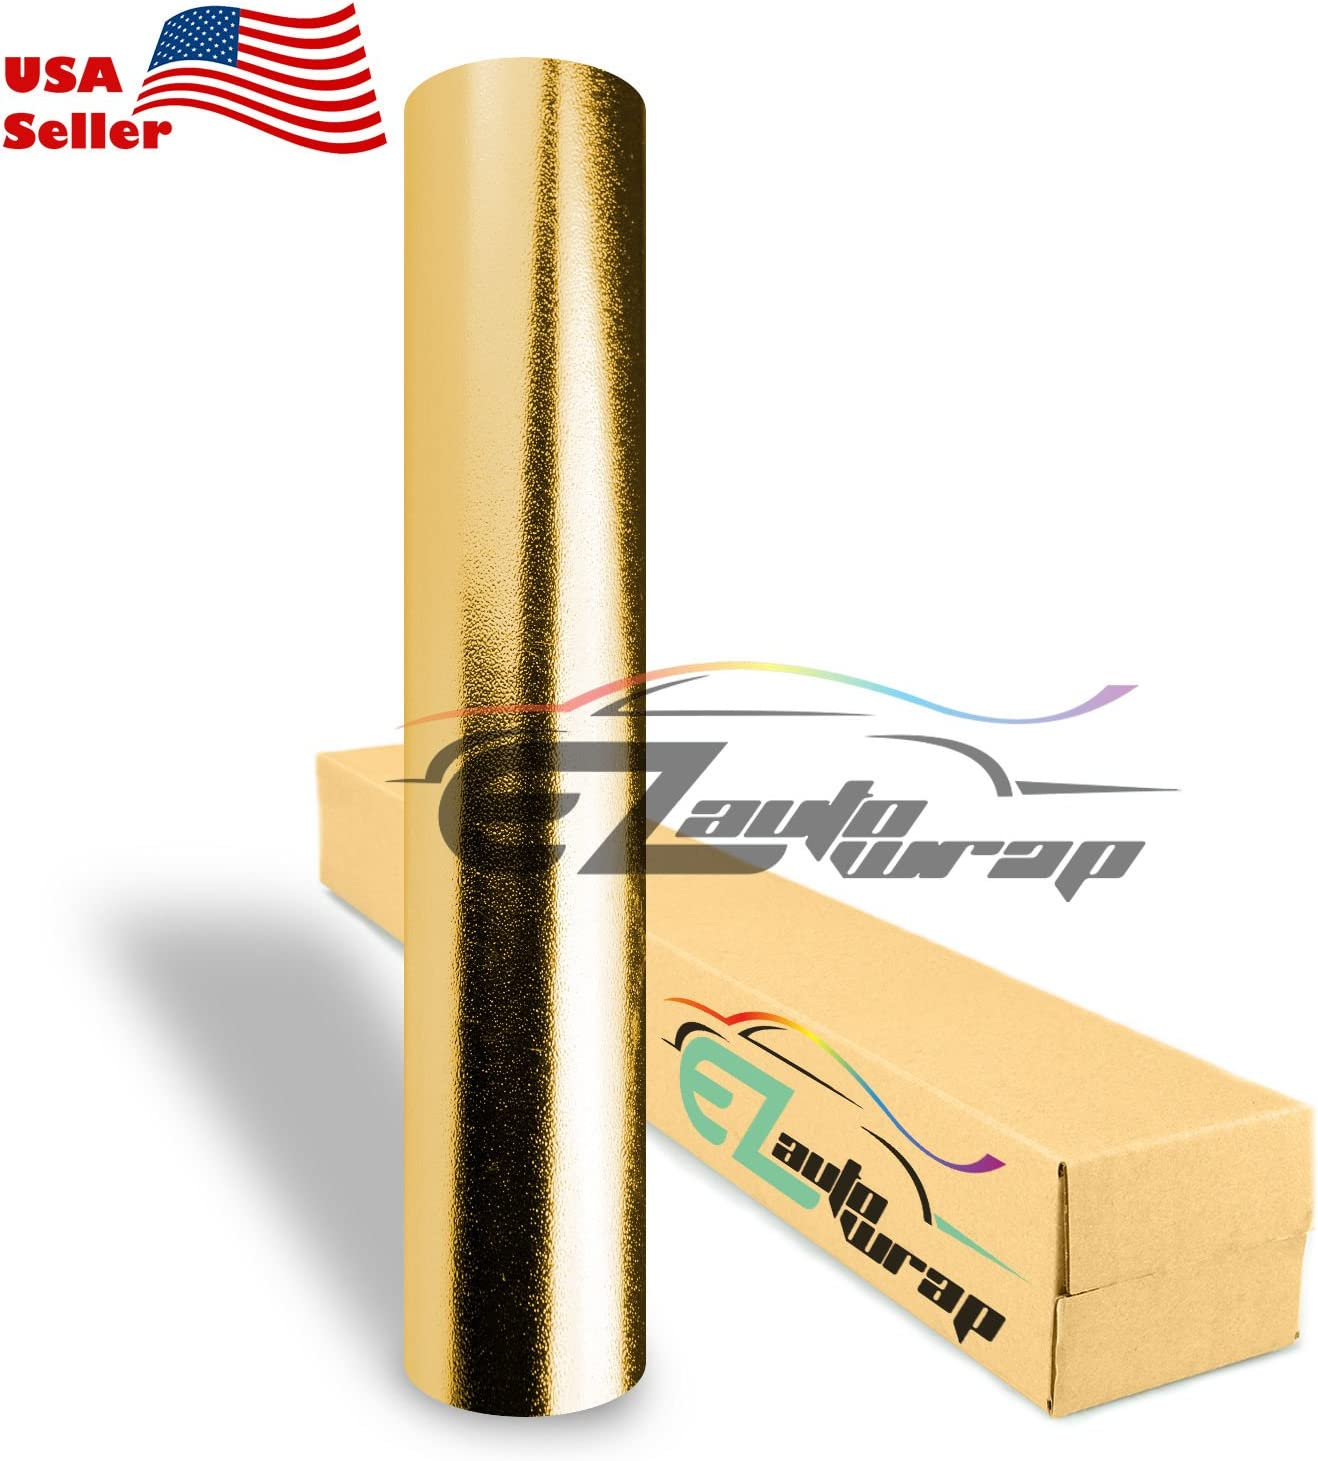 EZAUTOWRAP Max 41% OFF New products world's highest quality popular Chrome Glitter Gold Car Vinyl Wrap Shee Sticker Decal